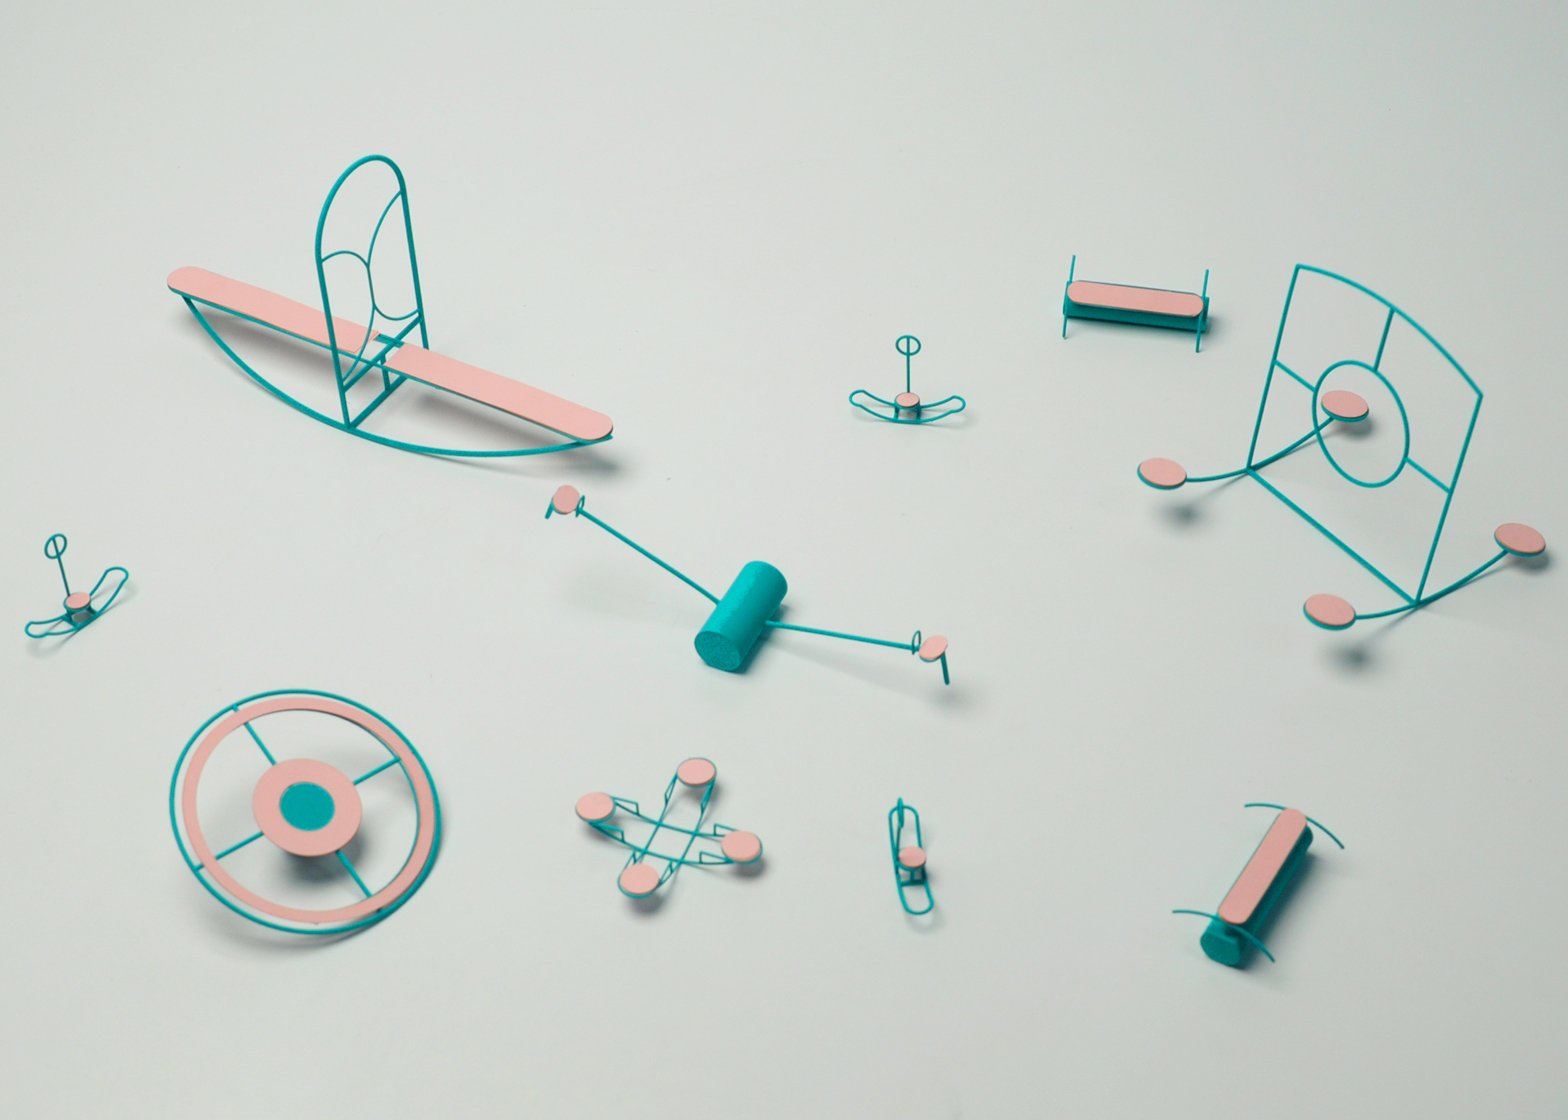 Loose Play playground equipment by Capucine Diancourt